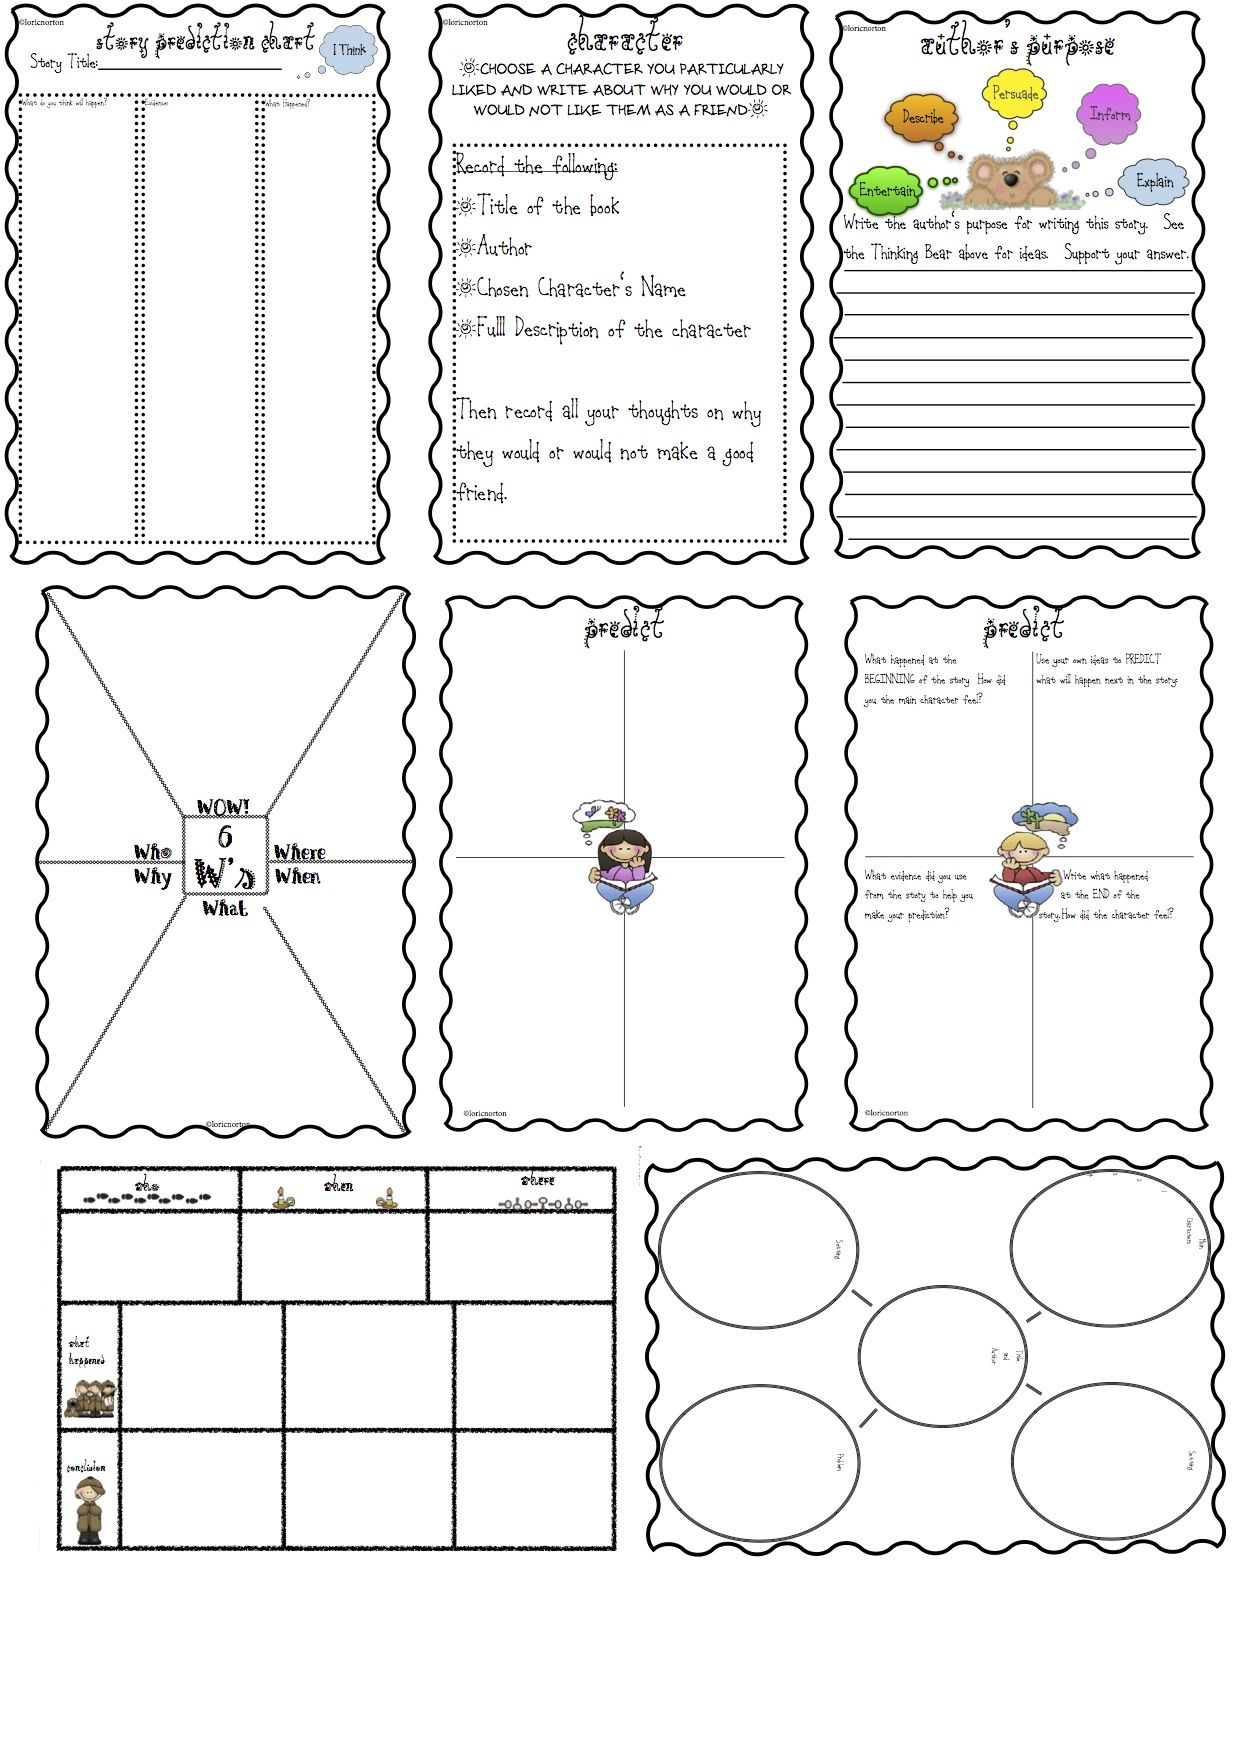 Worksheets Independent Reading Worksheets you can use these worksheets as a follow up activity after guided or reciprocal reading an independent task great set of g